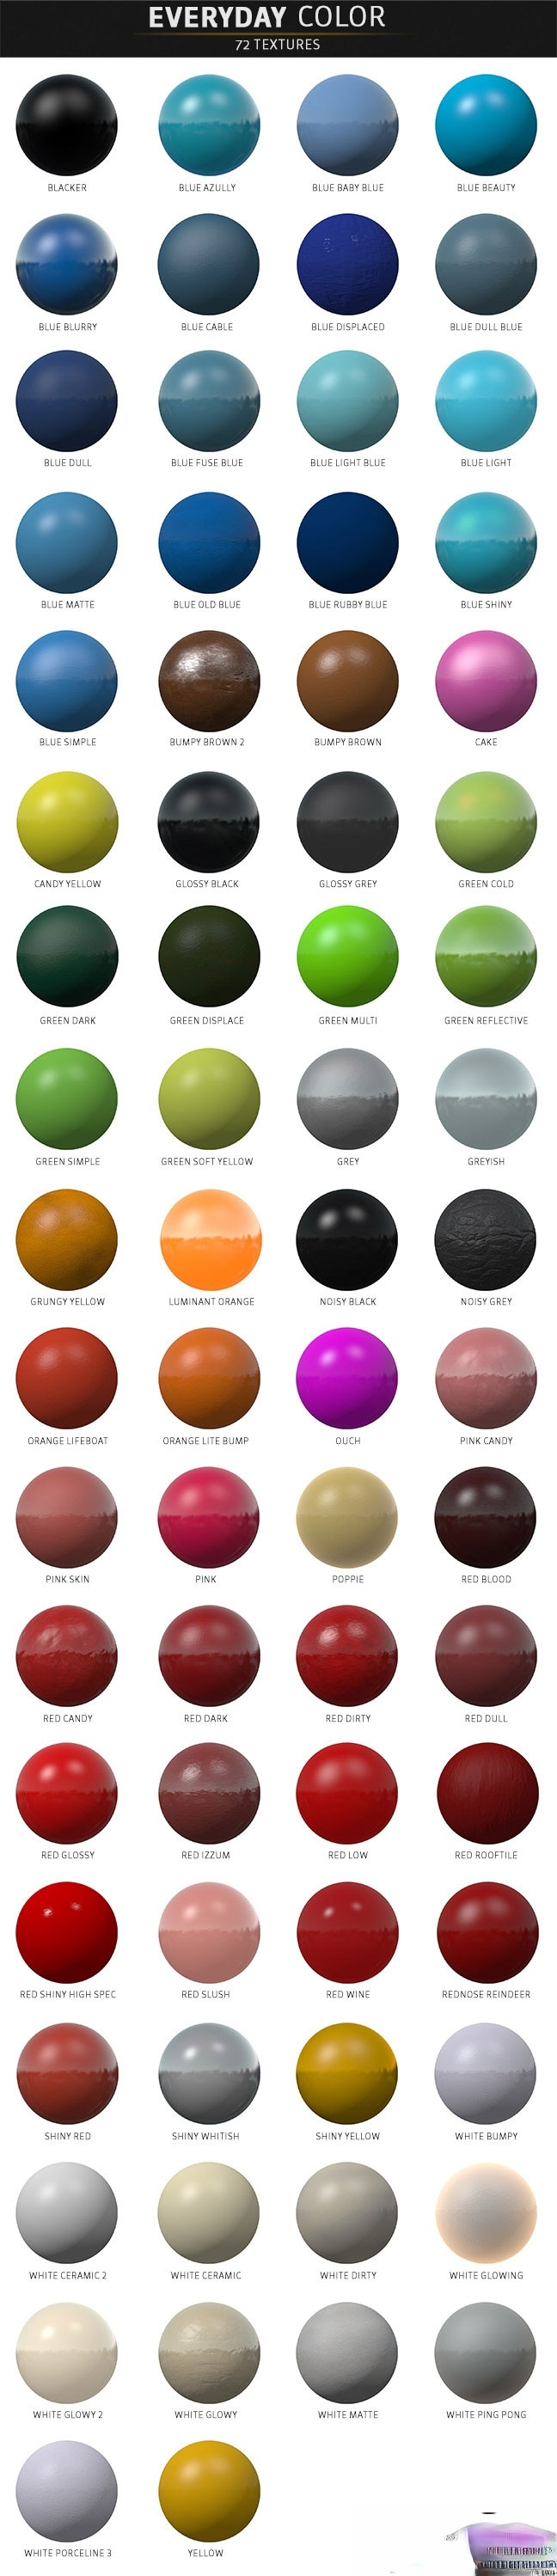 Everyday-Color-Material-Pack-Element-3D-Textures.jpg